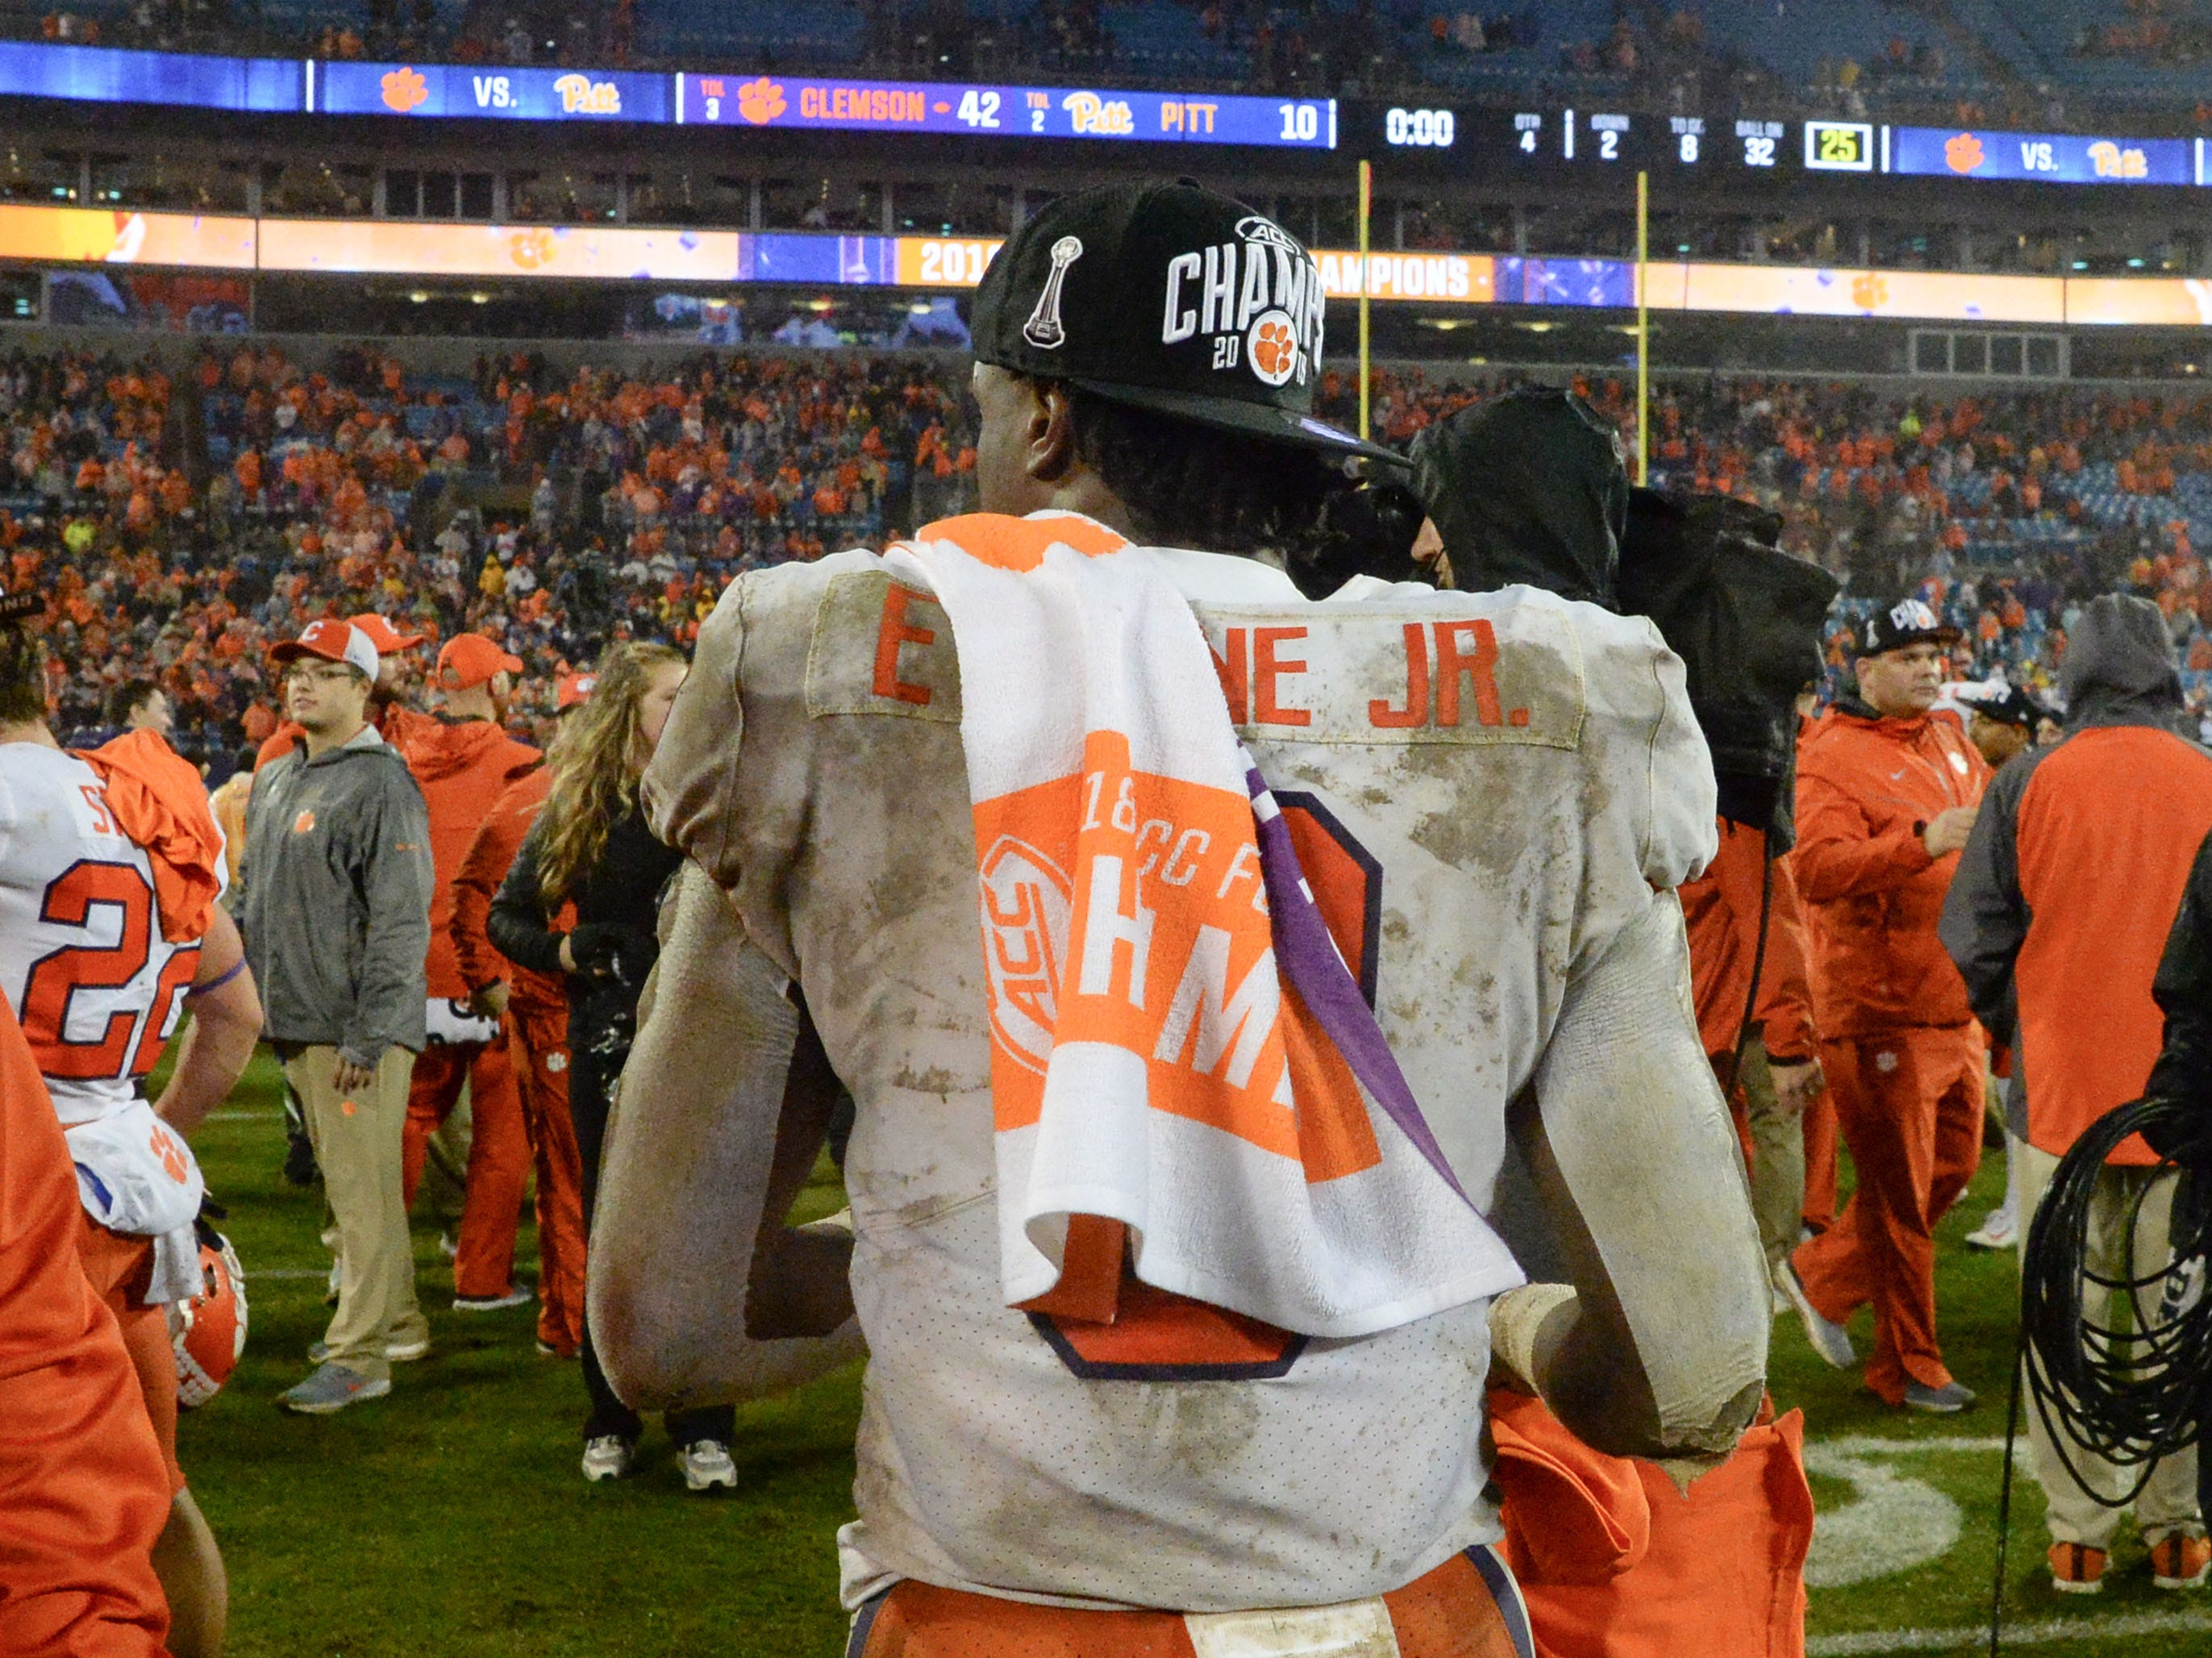 Clemson running back Travis Etienne (9) after the game at the Dr. Pepper ACC football championship at Bank of America Stadium in Charlotte, N.C. on Saturday, December 1, 2018.